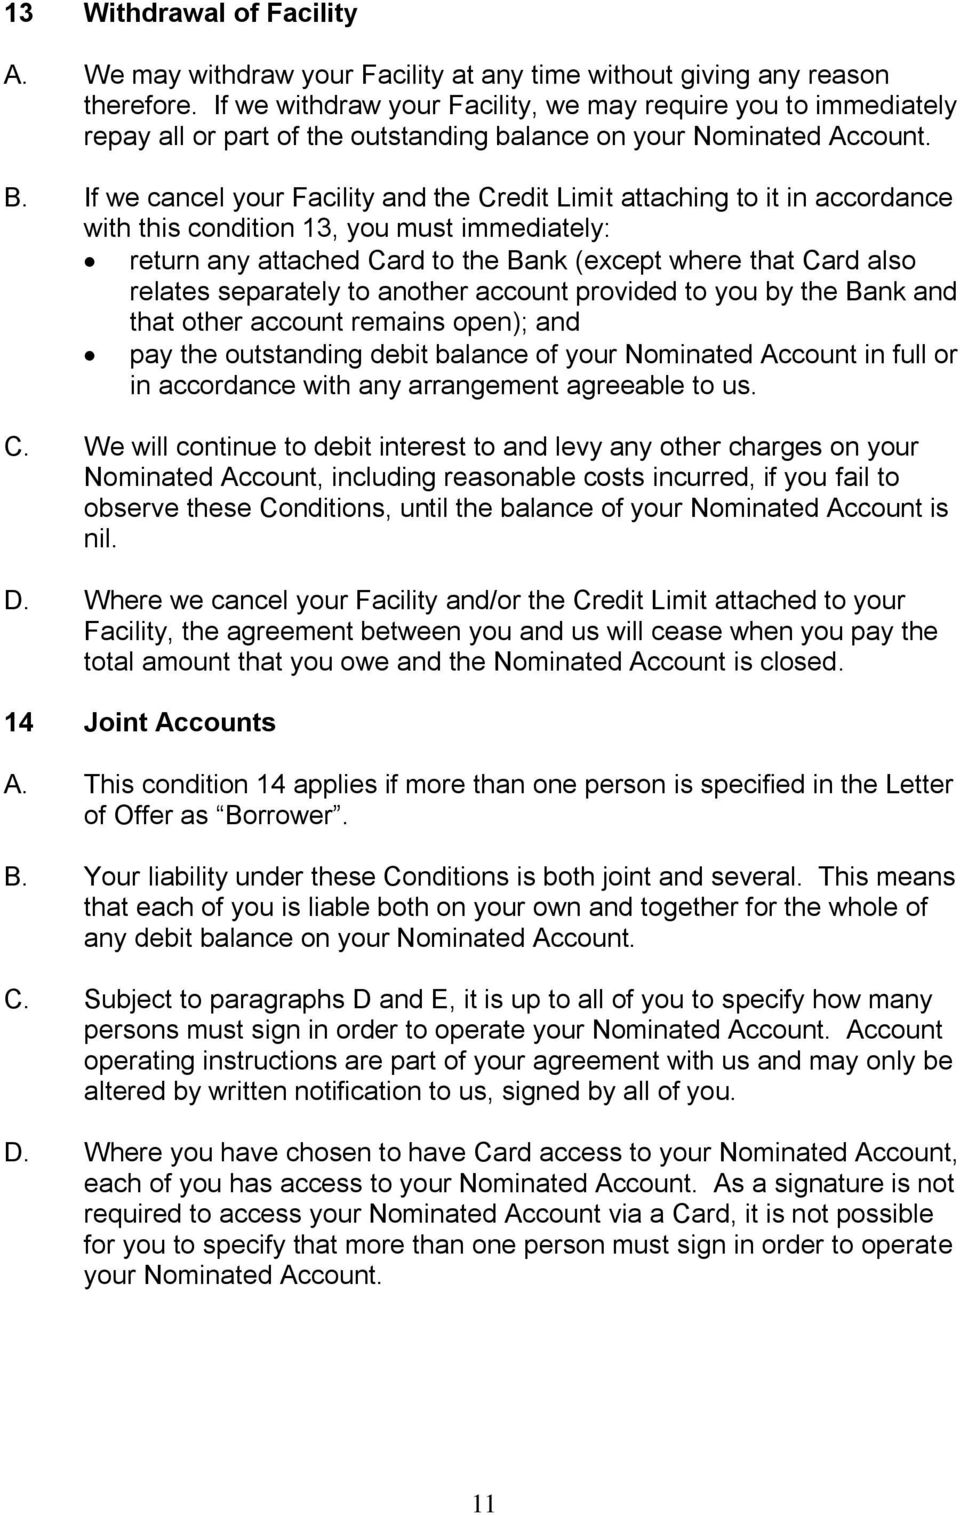 If we cancel your Facility and the Credit Limit attaching to it in accordance with this condition 13, you must immediately: return any attached Card to the Bank (except where that Card also relates